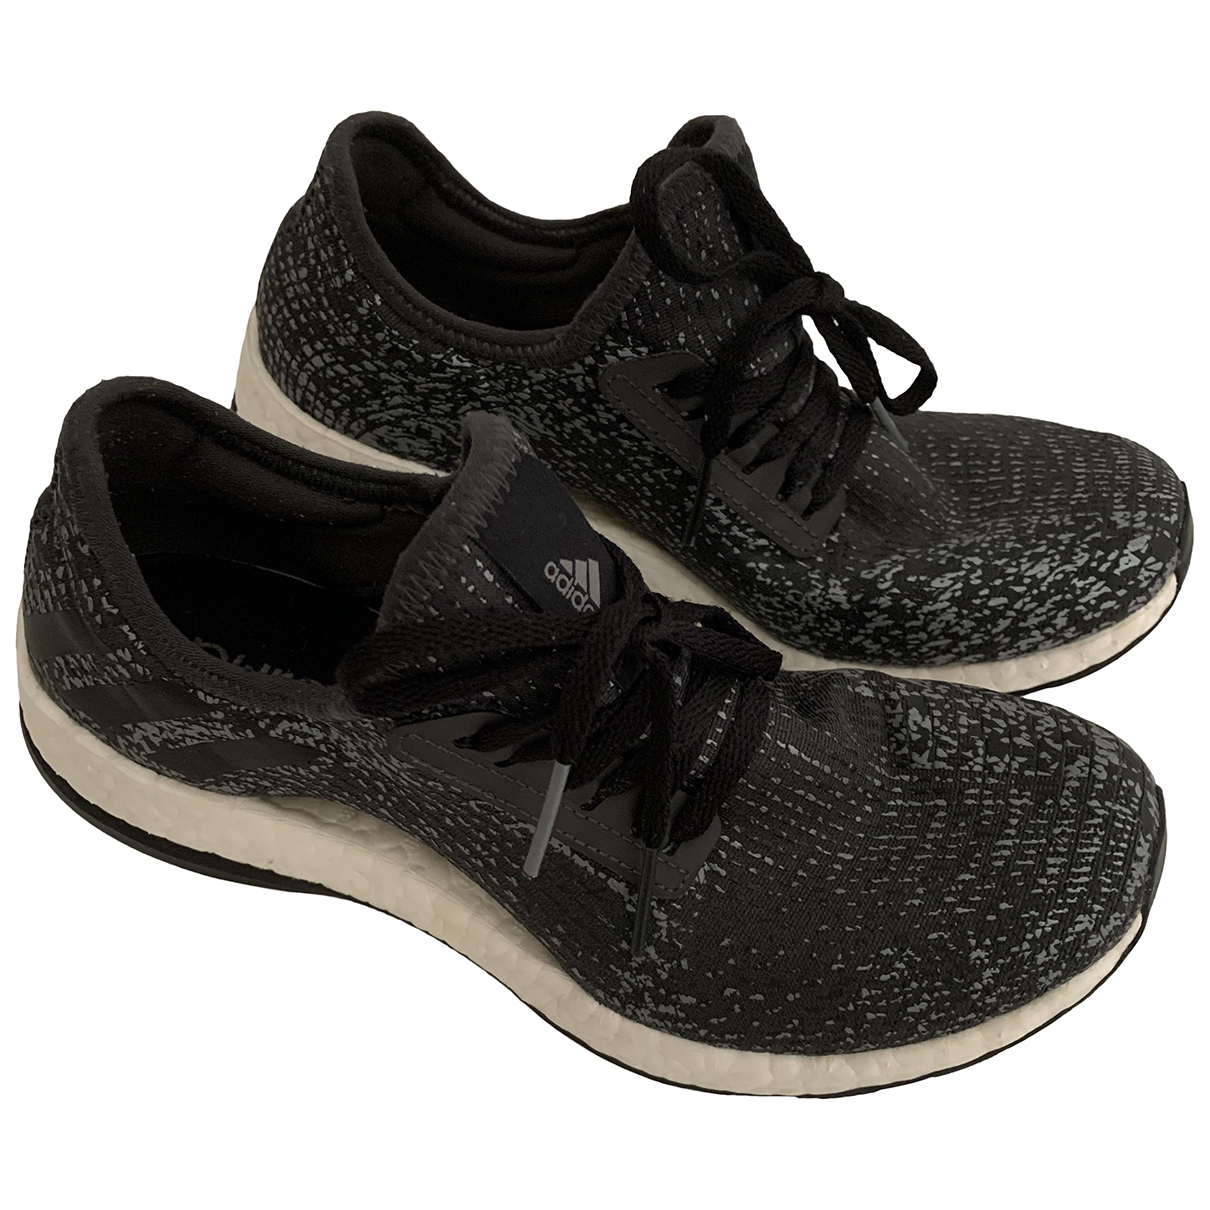 Adidas PureBOOST Anthracite Cloth Trainers for Women 5.5 UK